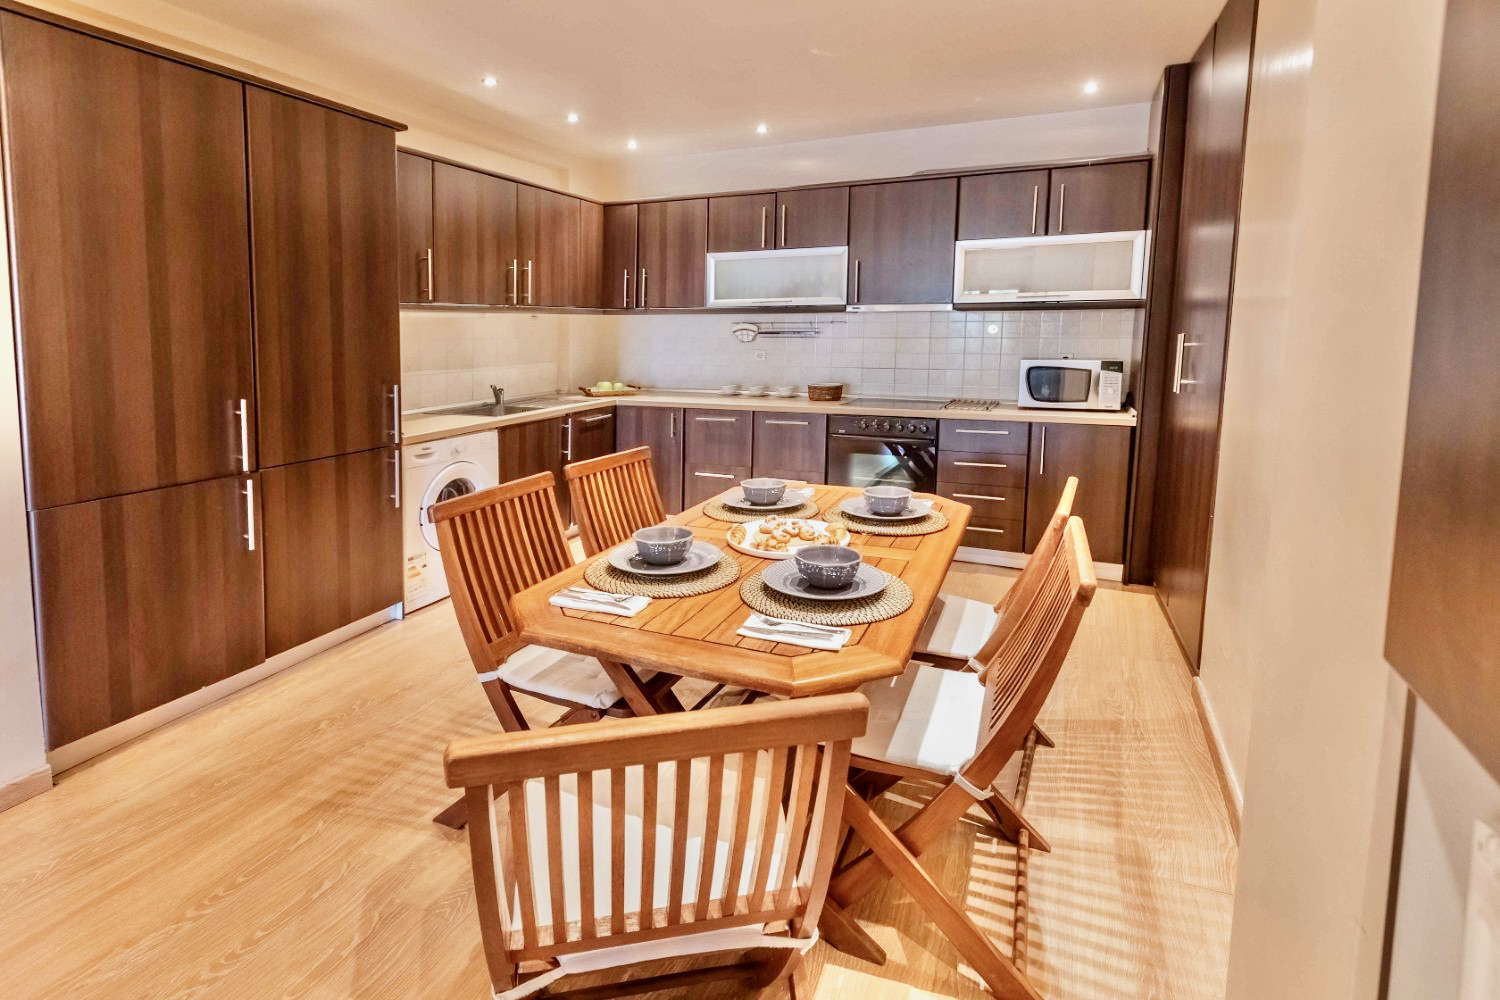 Kitchen and dinging table